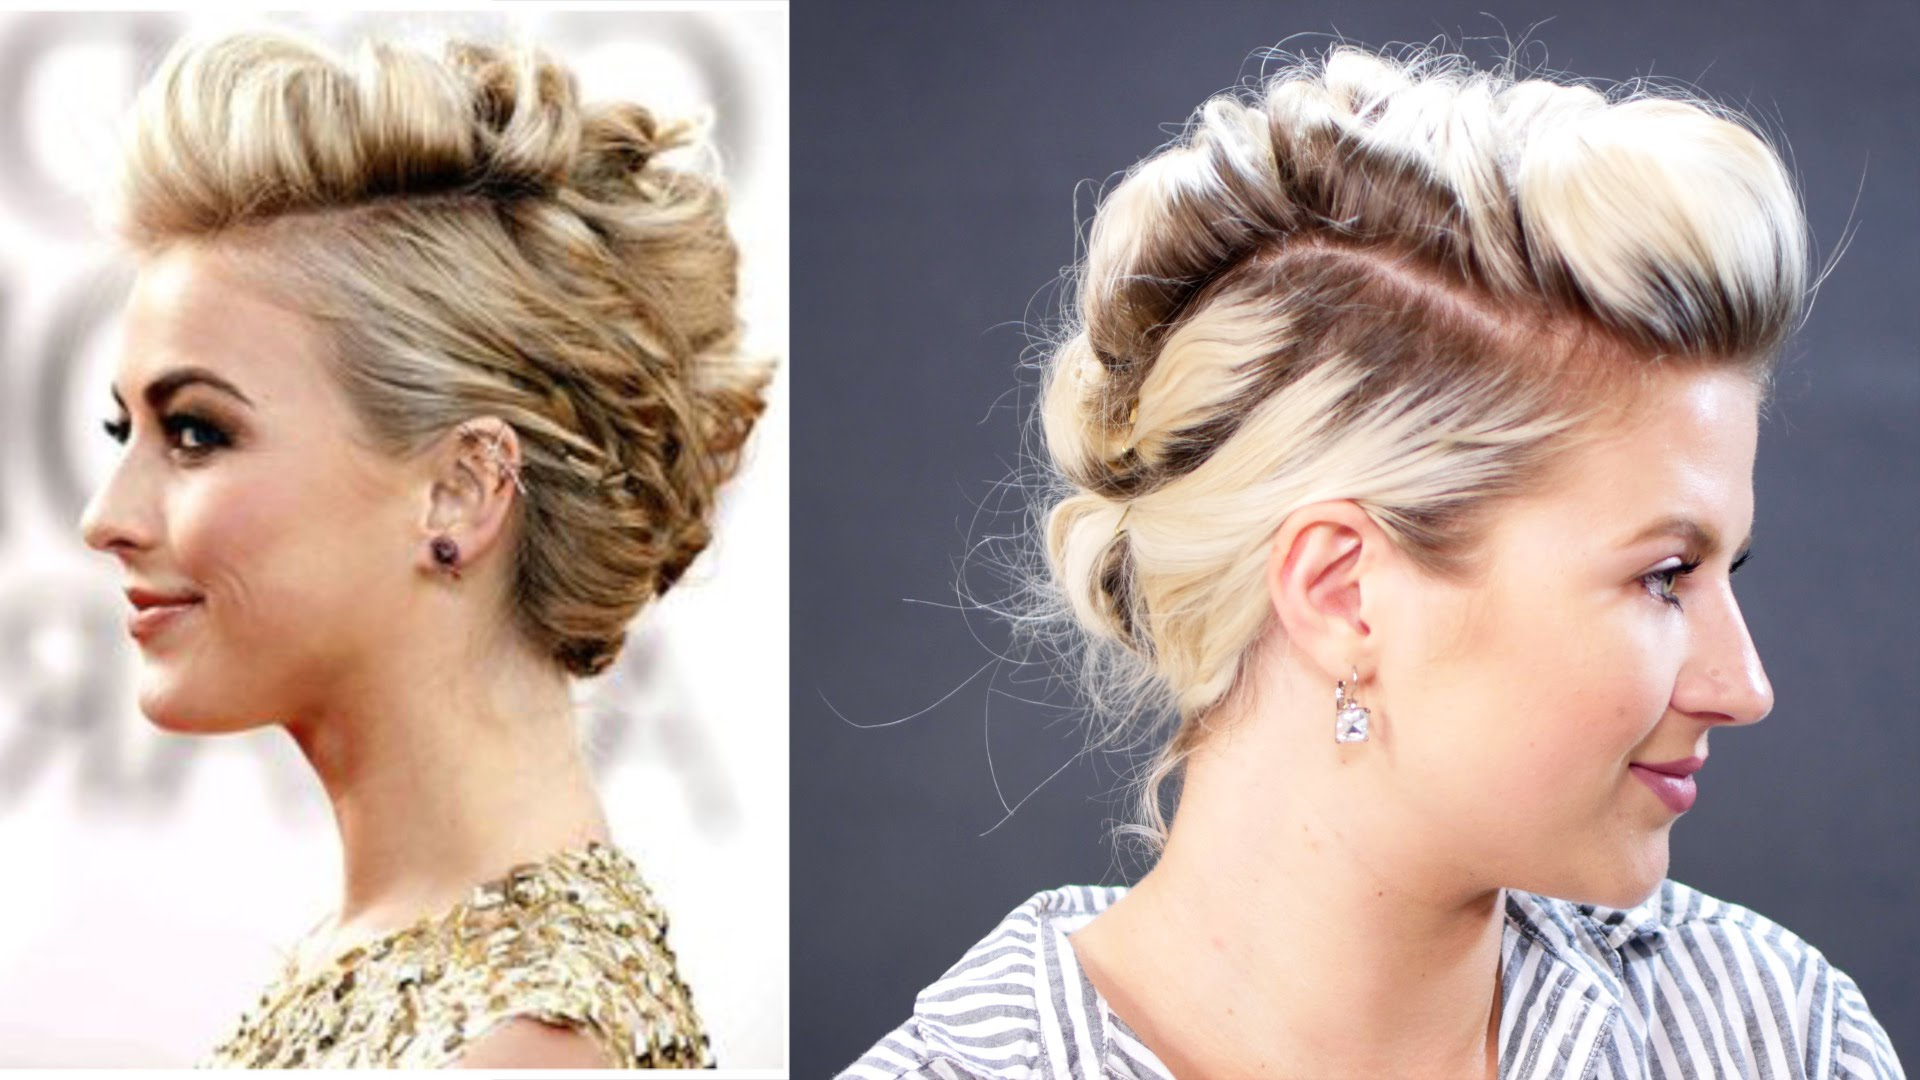 Widely Used Cool Mohawk Updo Hairstyles Within Discover Beauty & Sensitivity Of Female Braided Mohawk Updo – Wavy (View 20 of 20)